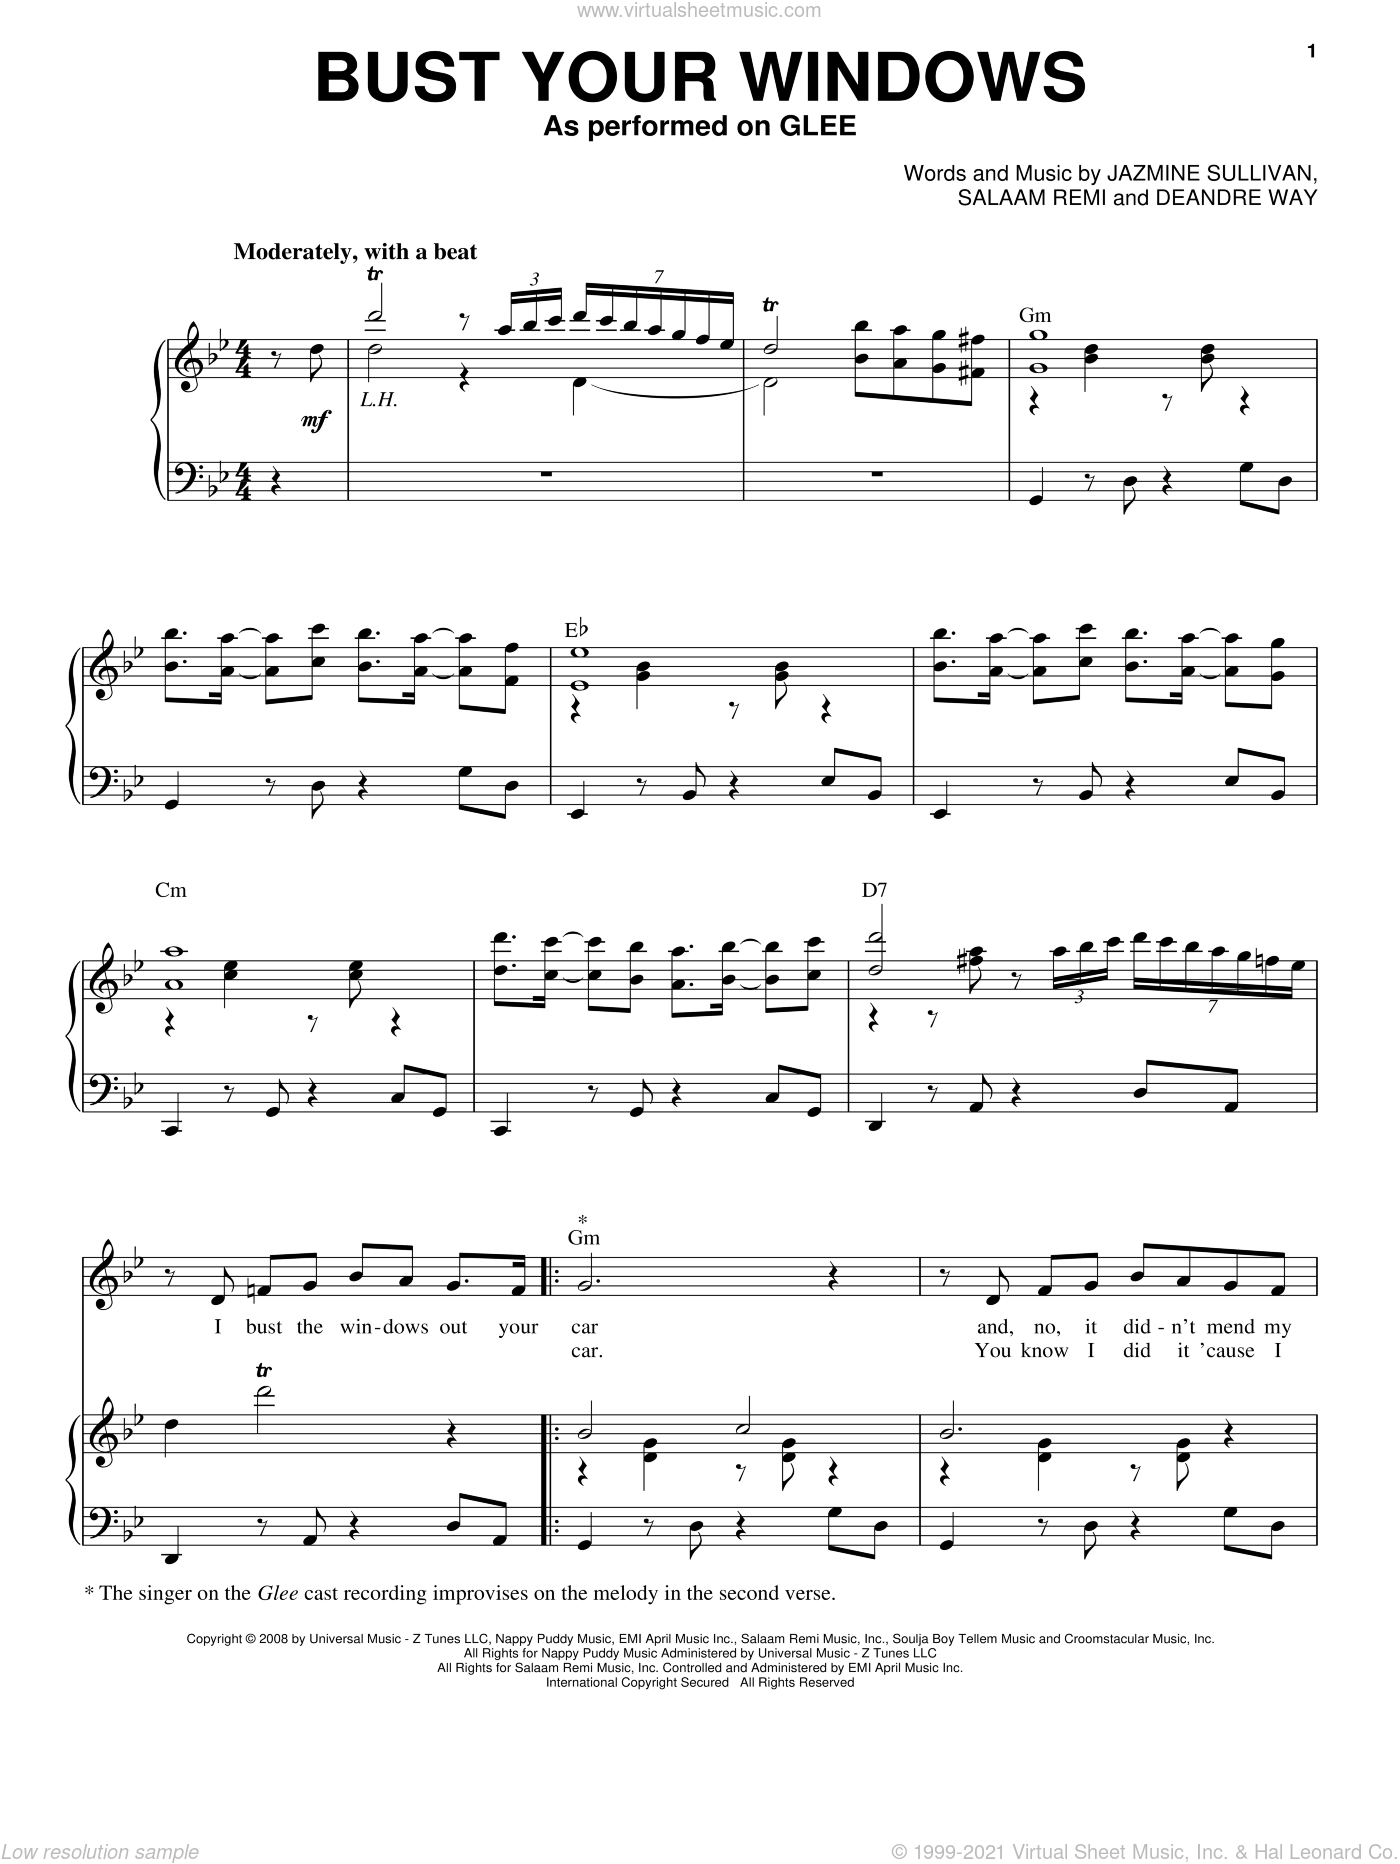 Bust Your Windows sheet music for voice and piano by Glee Cast, Miscellaneous, Deandre Way, Jazmine Sullivan and Salaam Remi, intermediate skill level